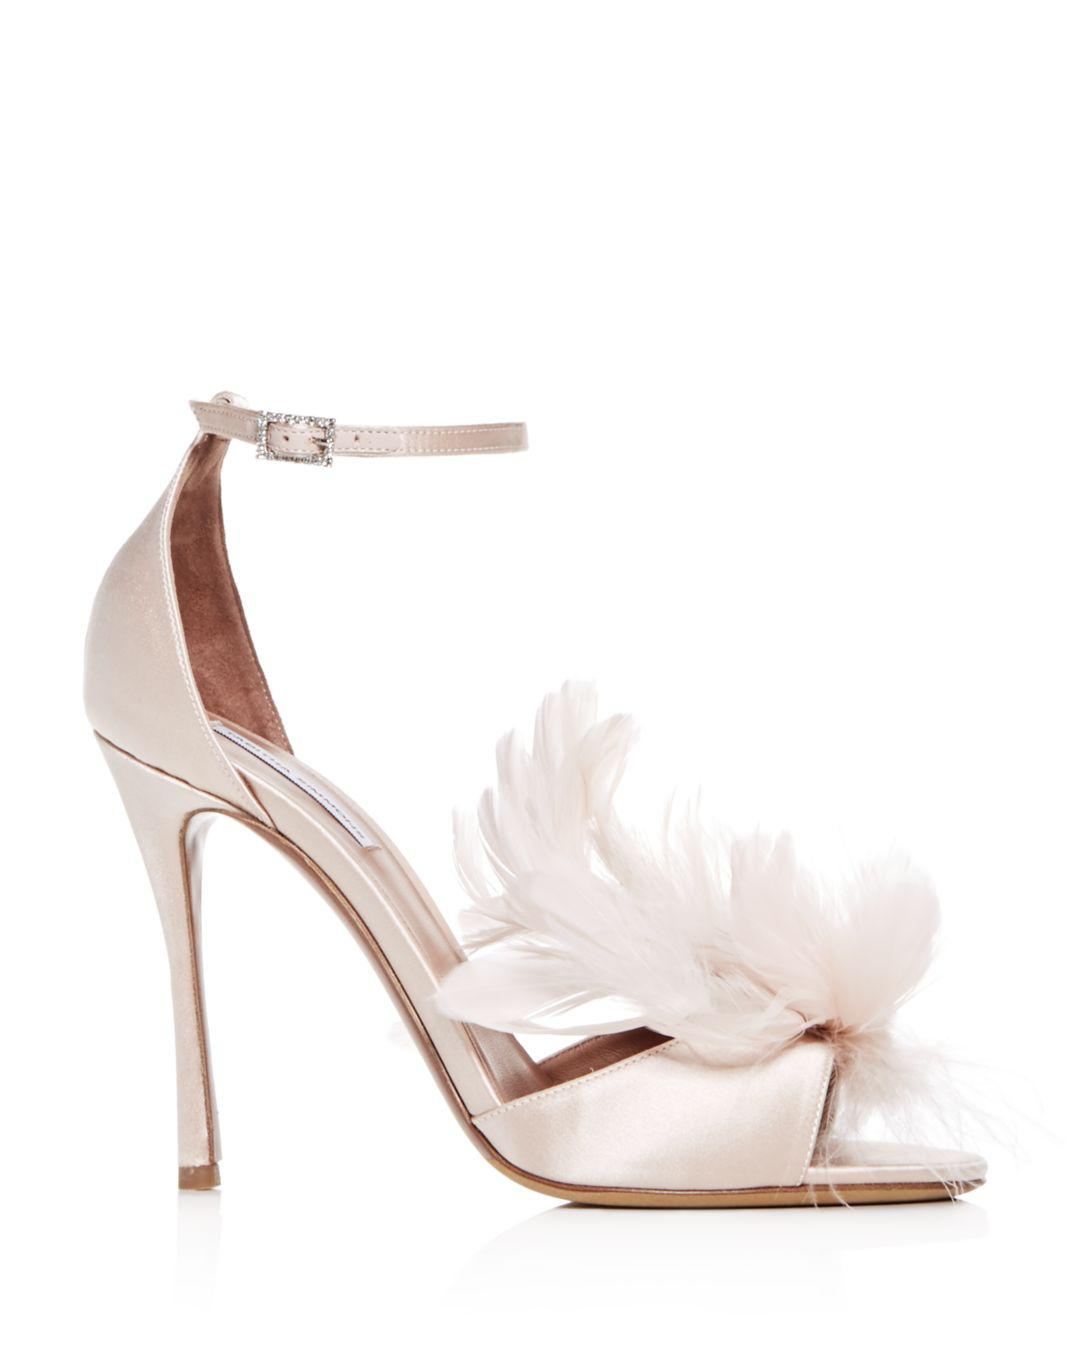 f4220f1529d Lyst - Tabitha Simmons Women s Satin   Feather High-heel Sandals in Pink